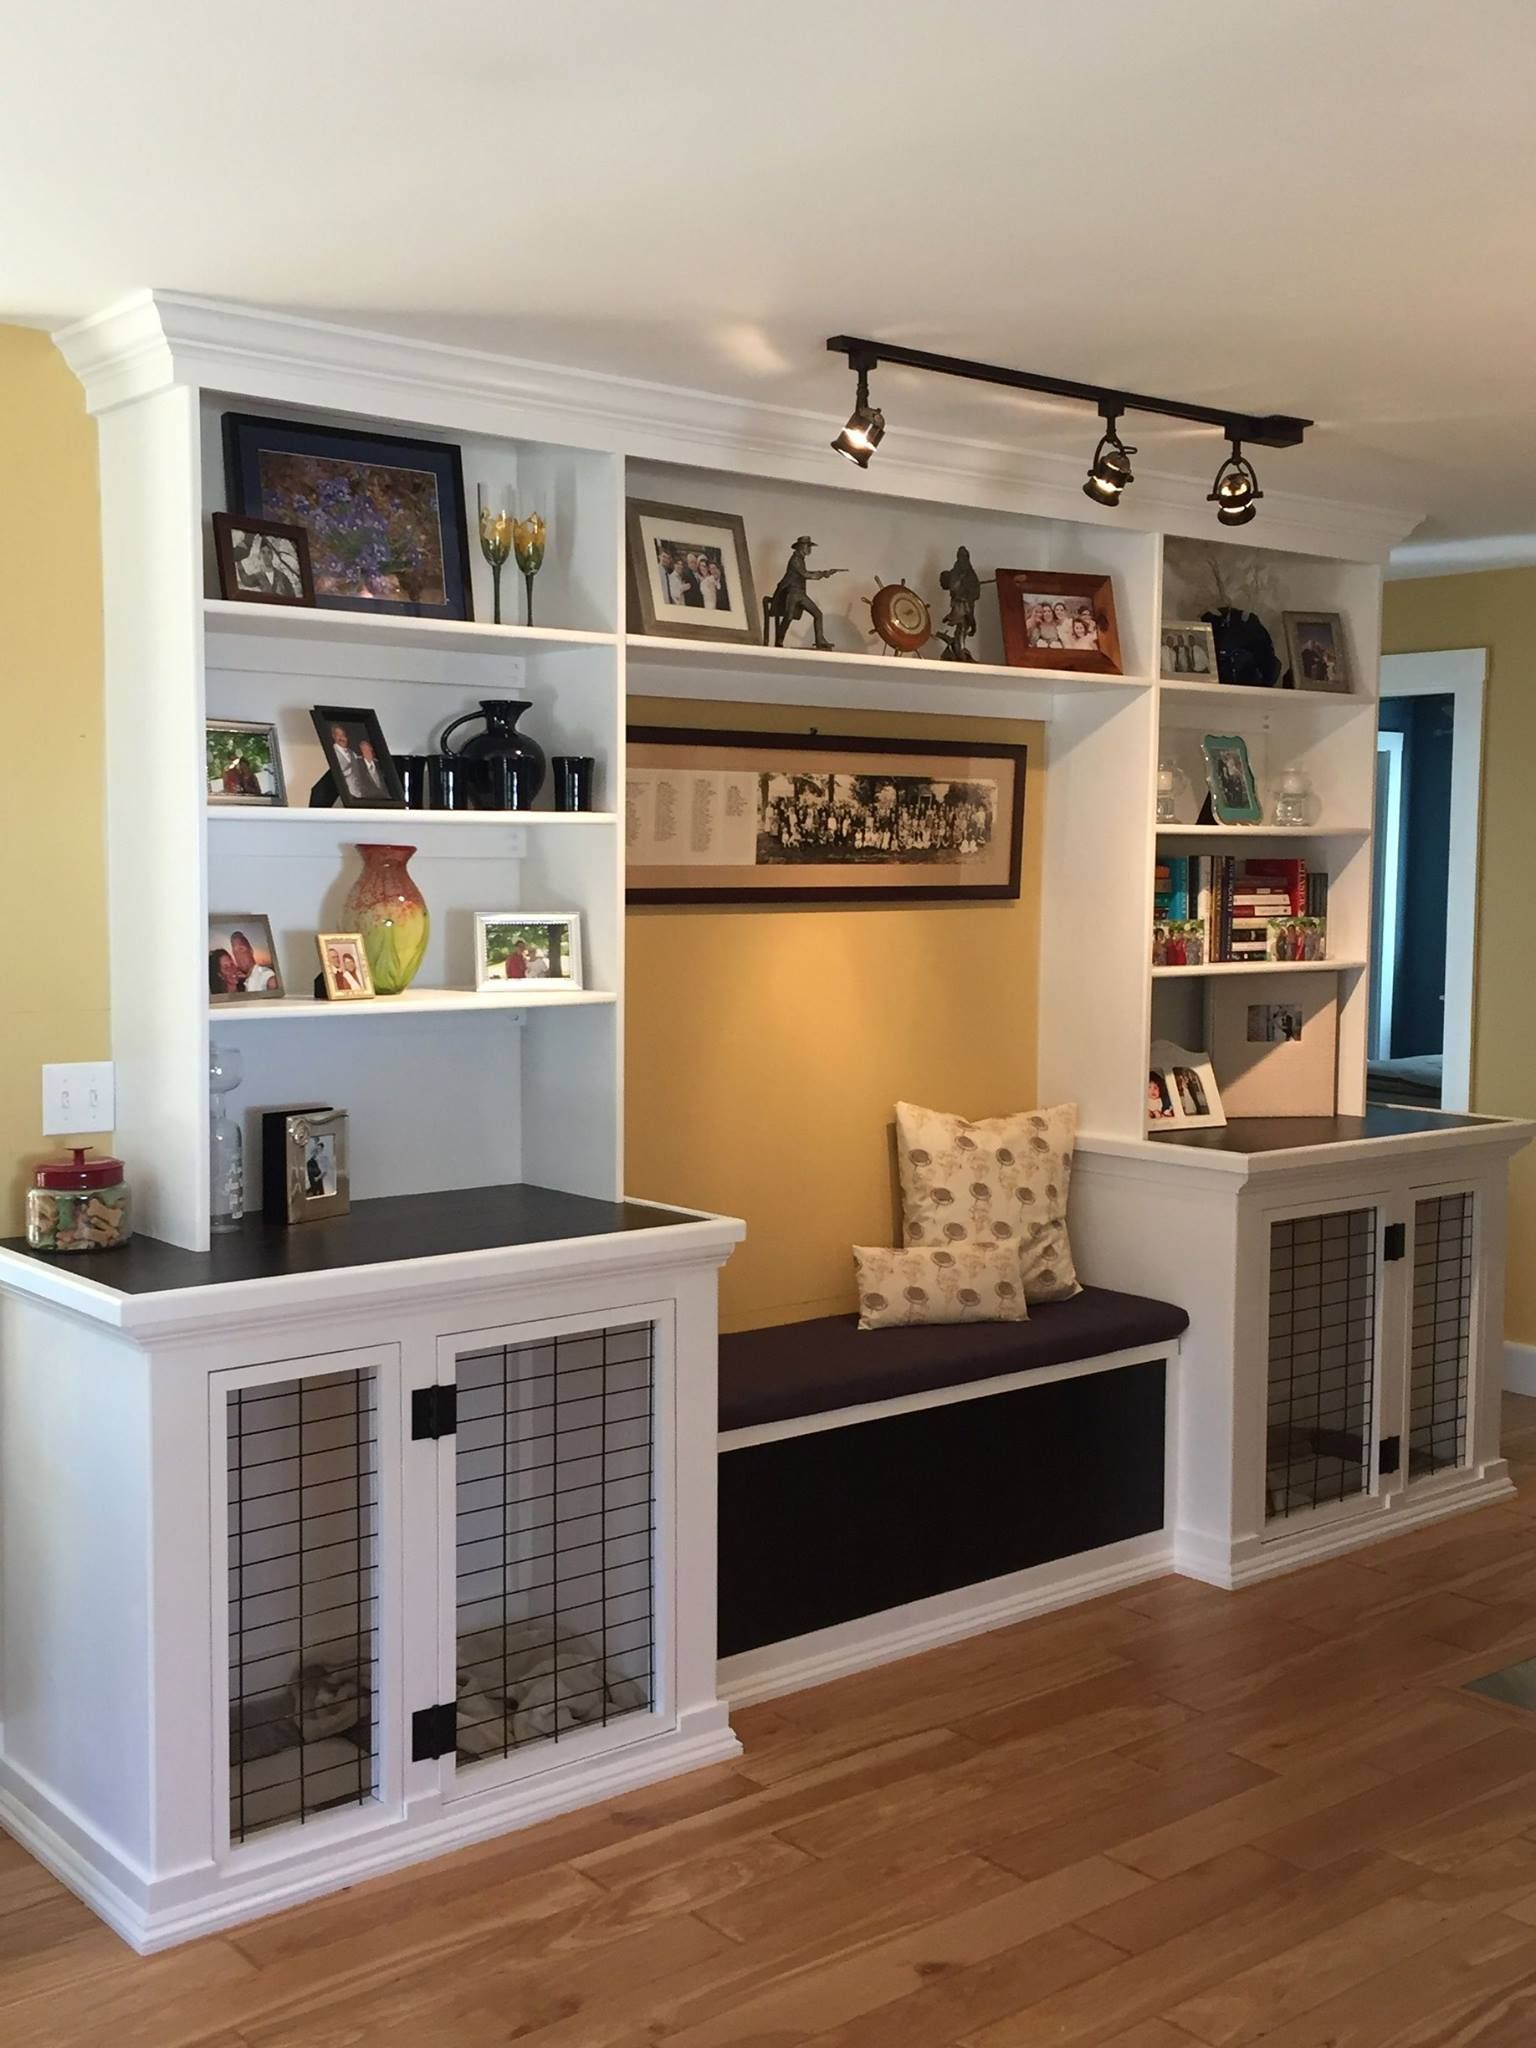 Dog Kennels, Bench Seat With Storage And Built In Bookshelves For In The  Basement.